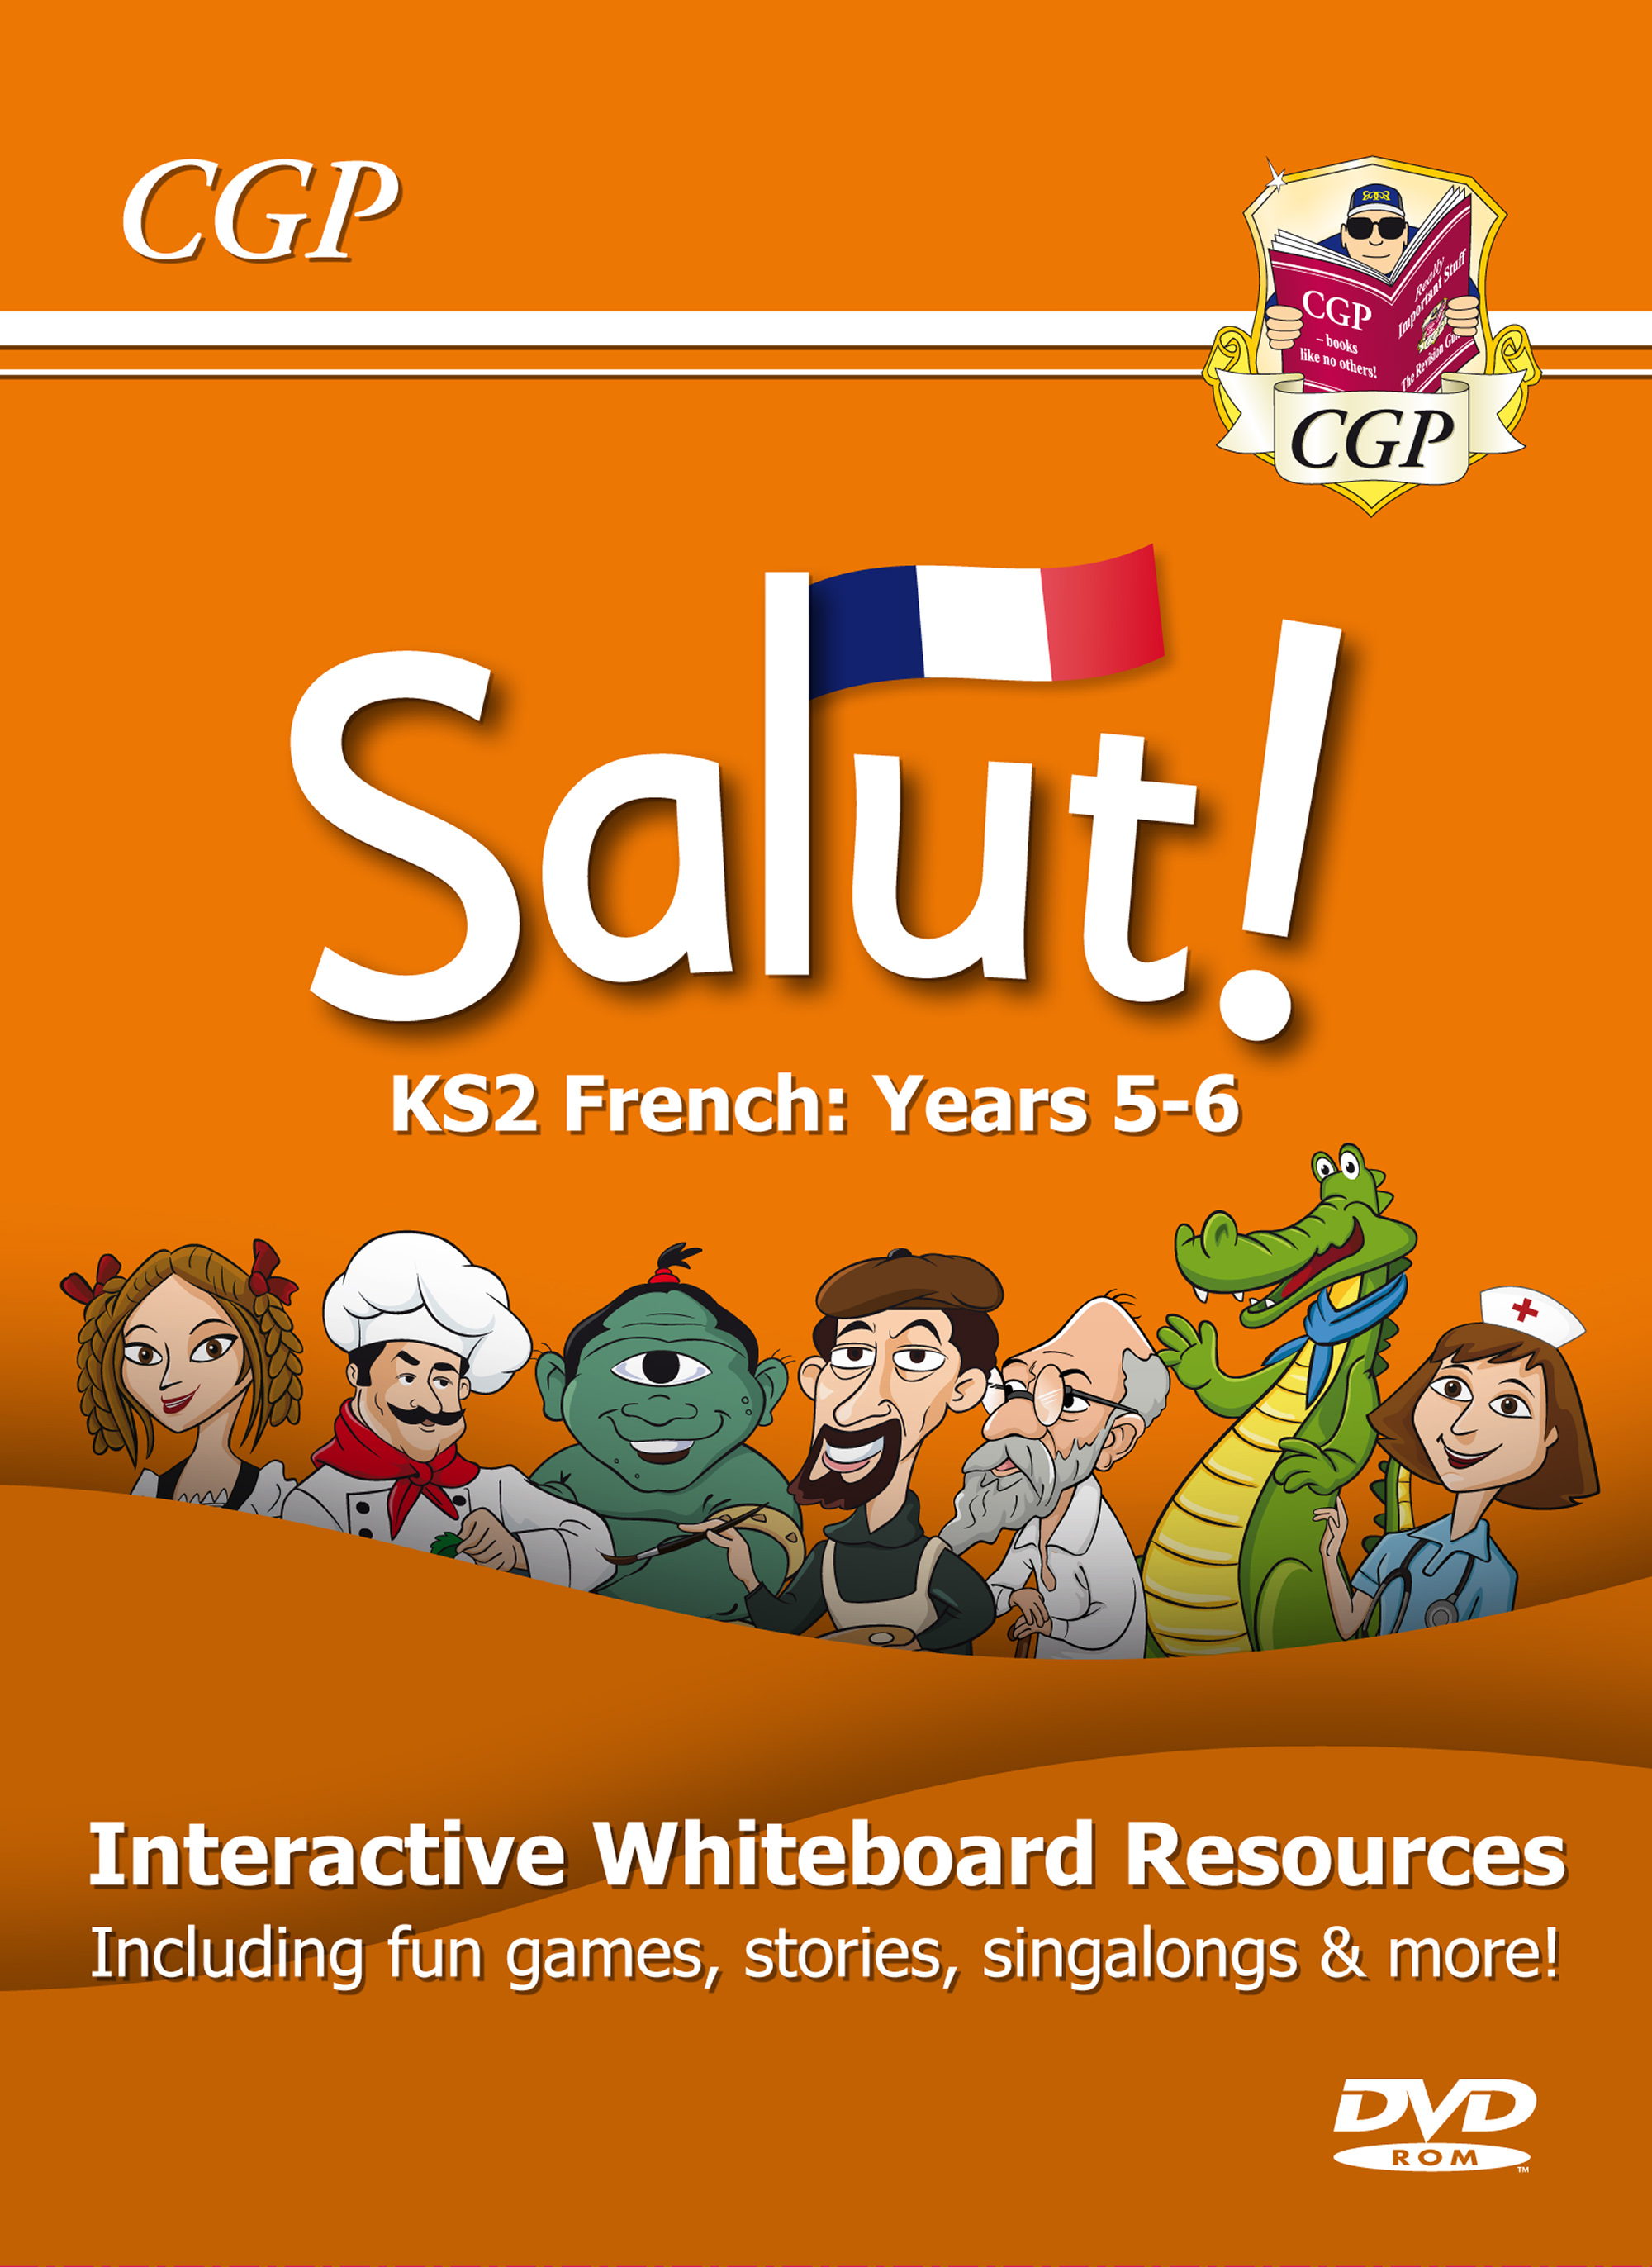 21FS6CP - Salut! KS2 French Interactive Whiteboard Resources - Years 5-6 (DVD-ROM)